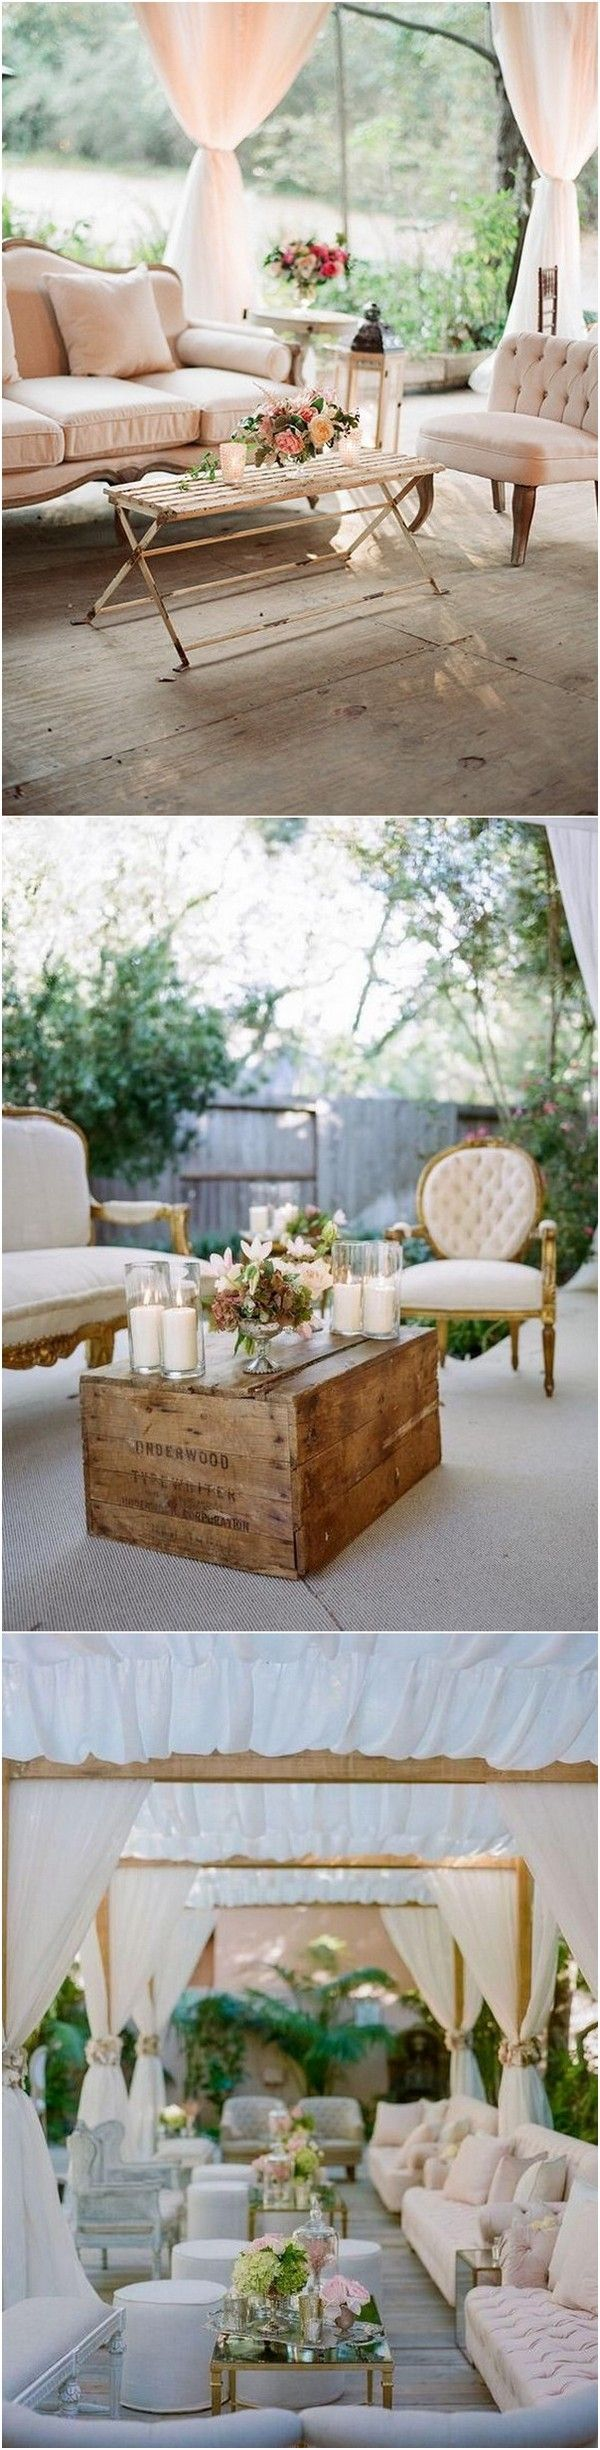 Vintage Wedding Reception Lounge Area Ideas #wedding #weddingideas #weddingdecor